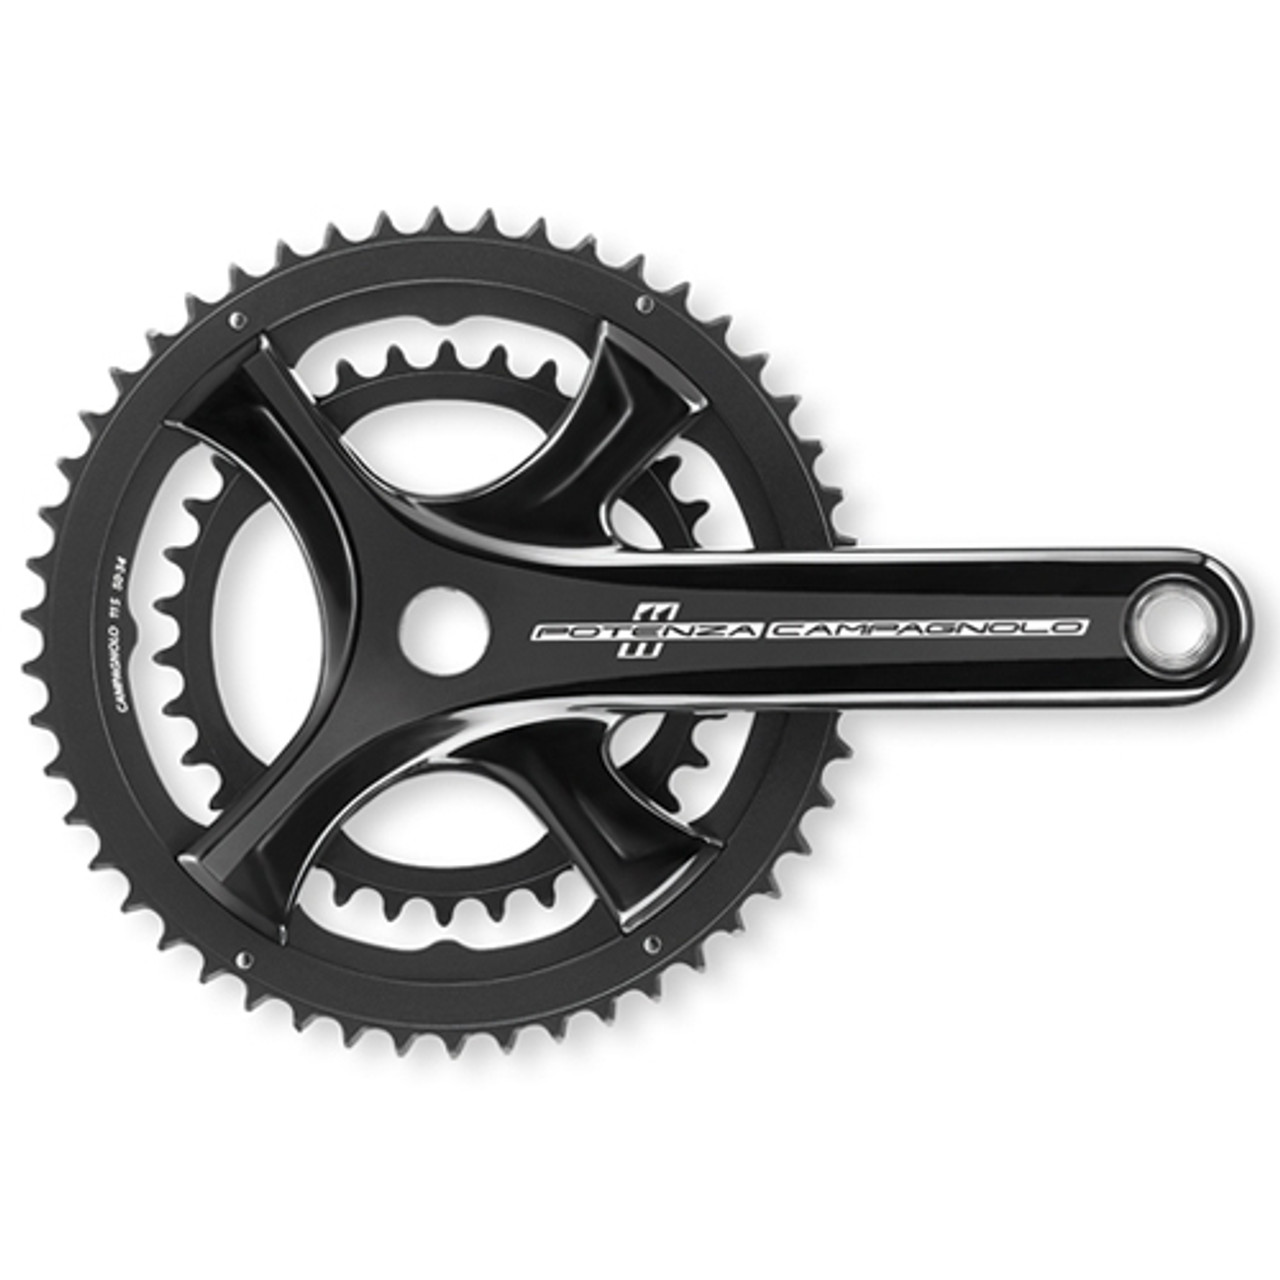 Campagnolo Potenza 11sp Chainset In Black All Sizes